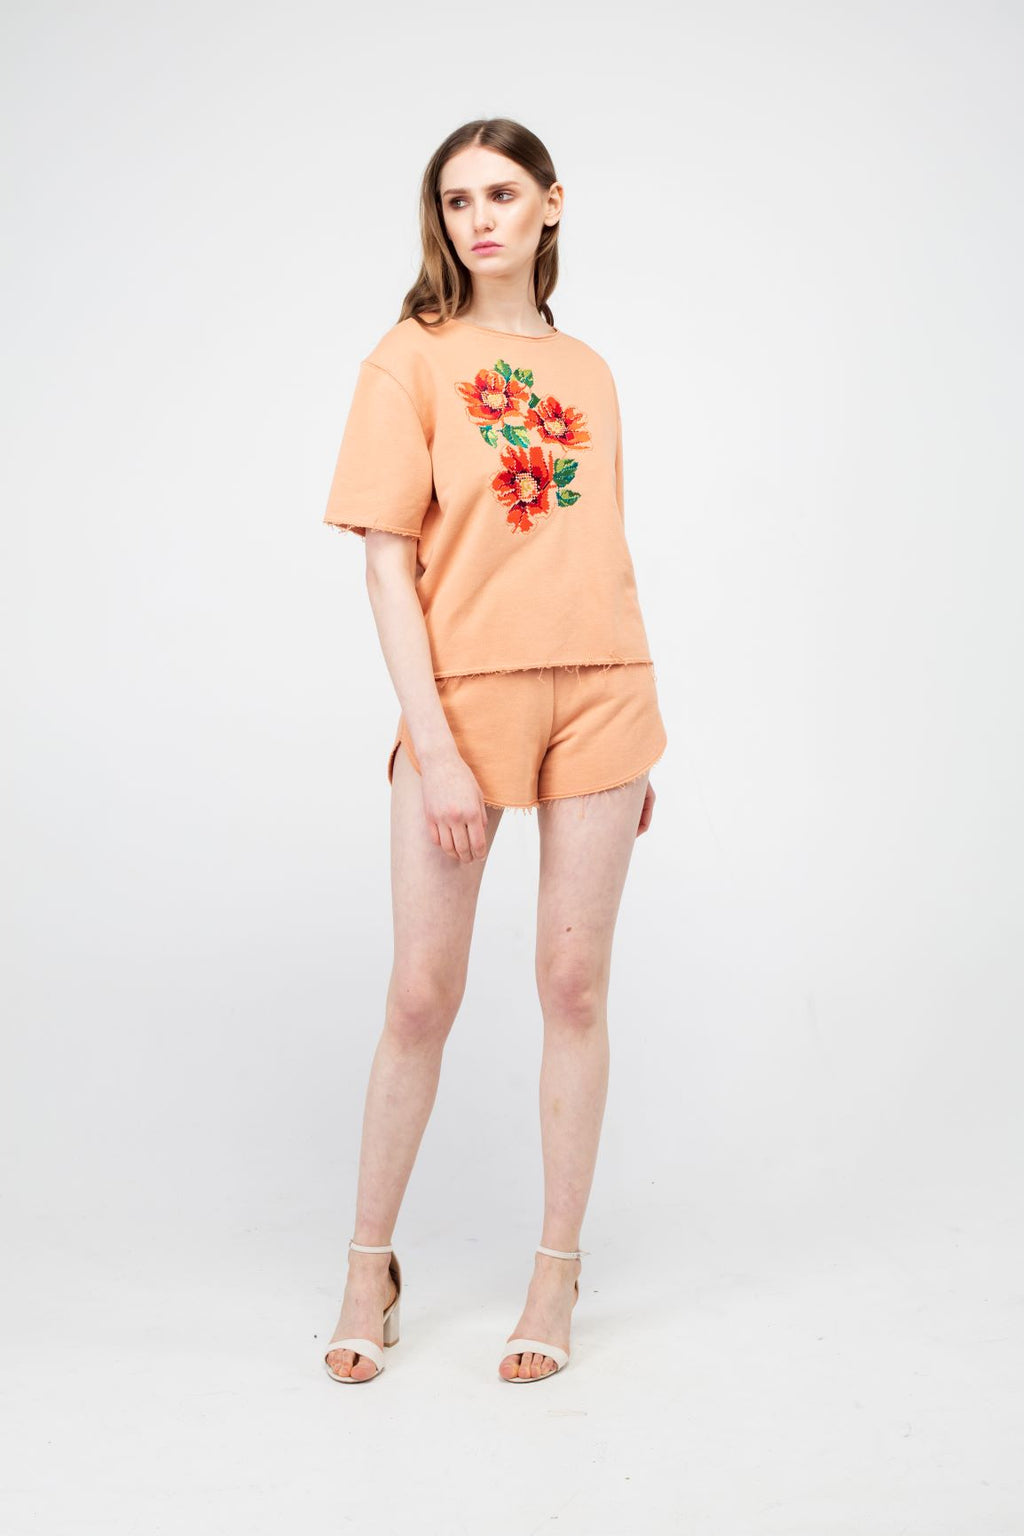 Peach Puff Poppy Flower Girls Set - LAZY FRANCIS - Shop in store at 406 Kings Road, Chelsea, London or shop online at www.lazyfrancis.com